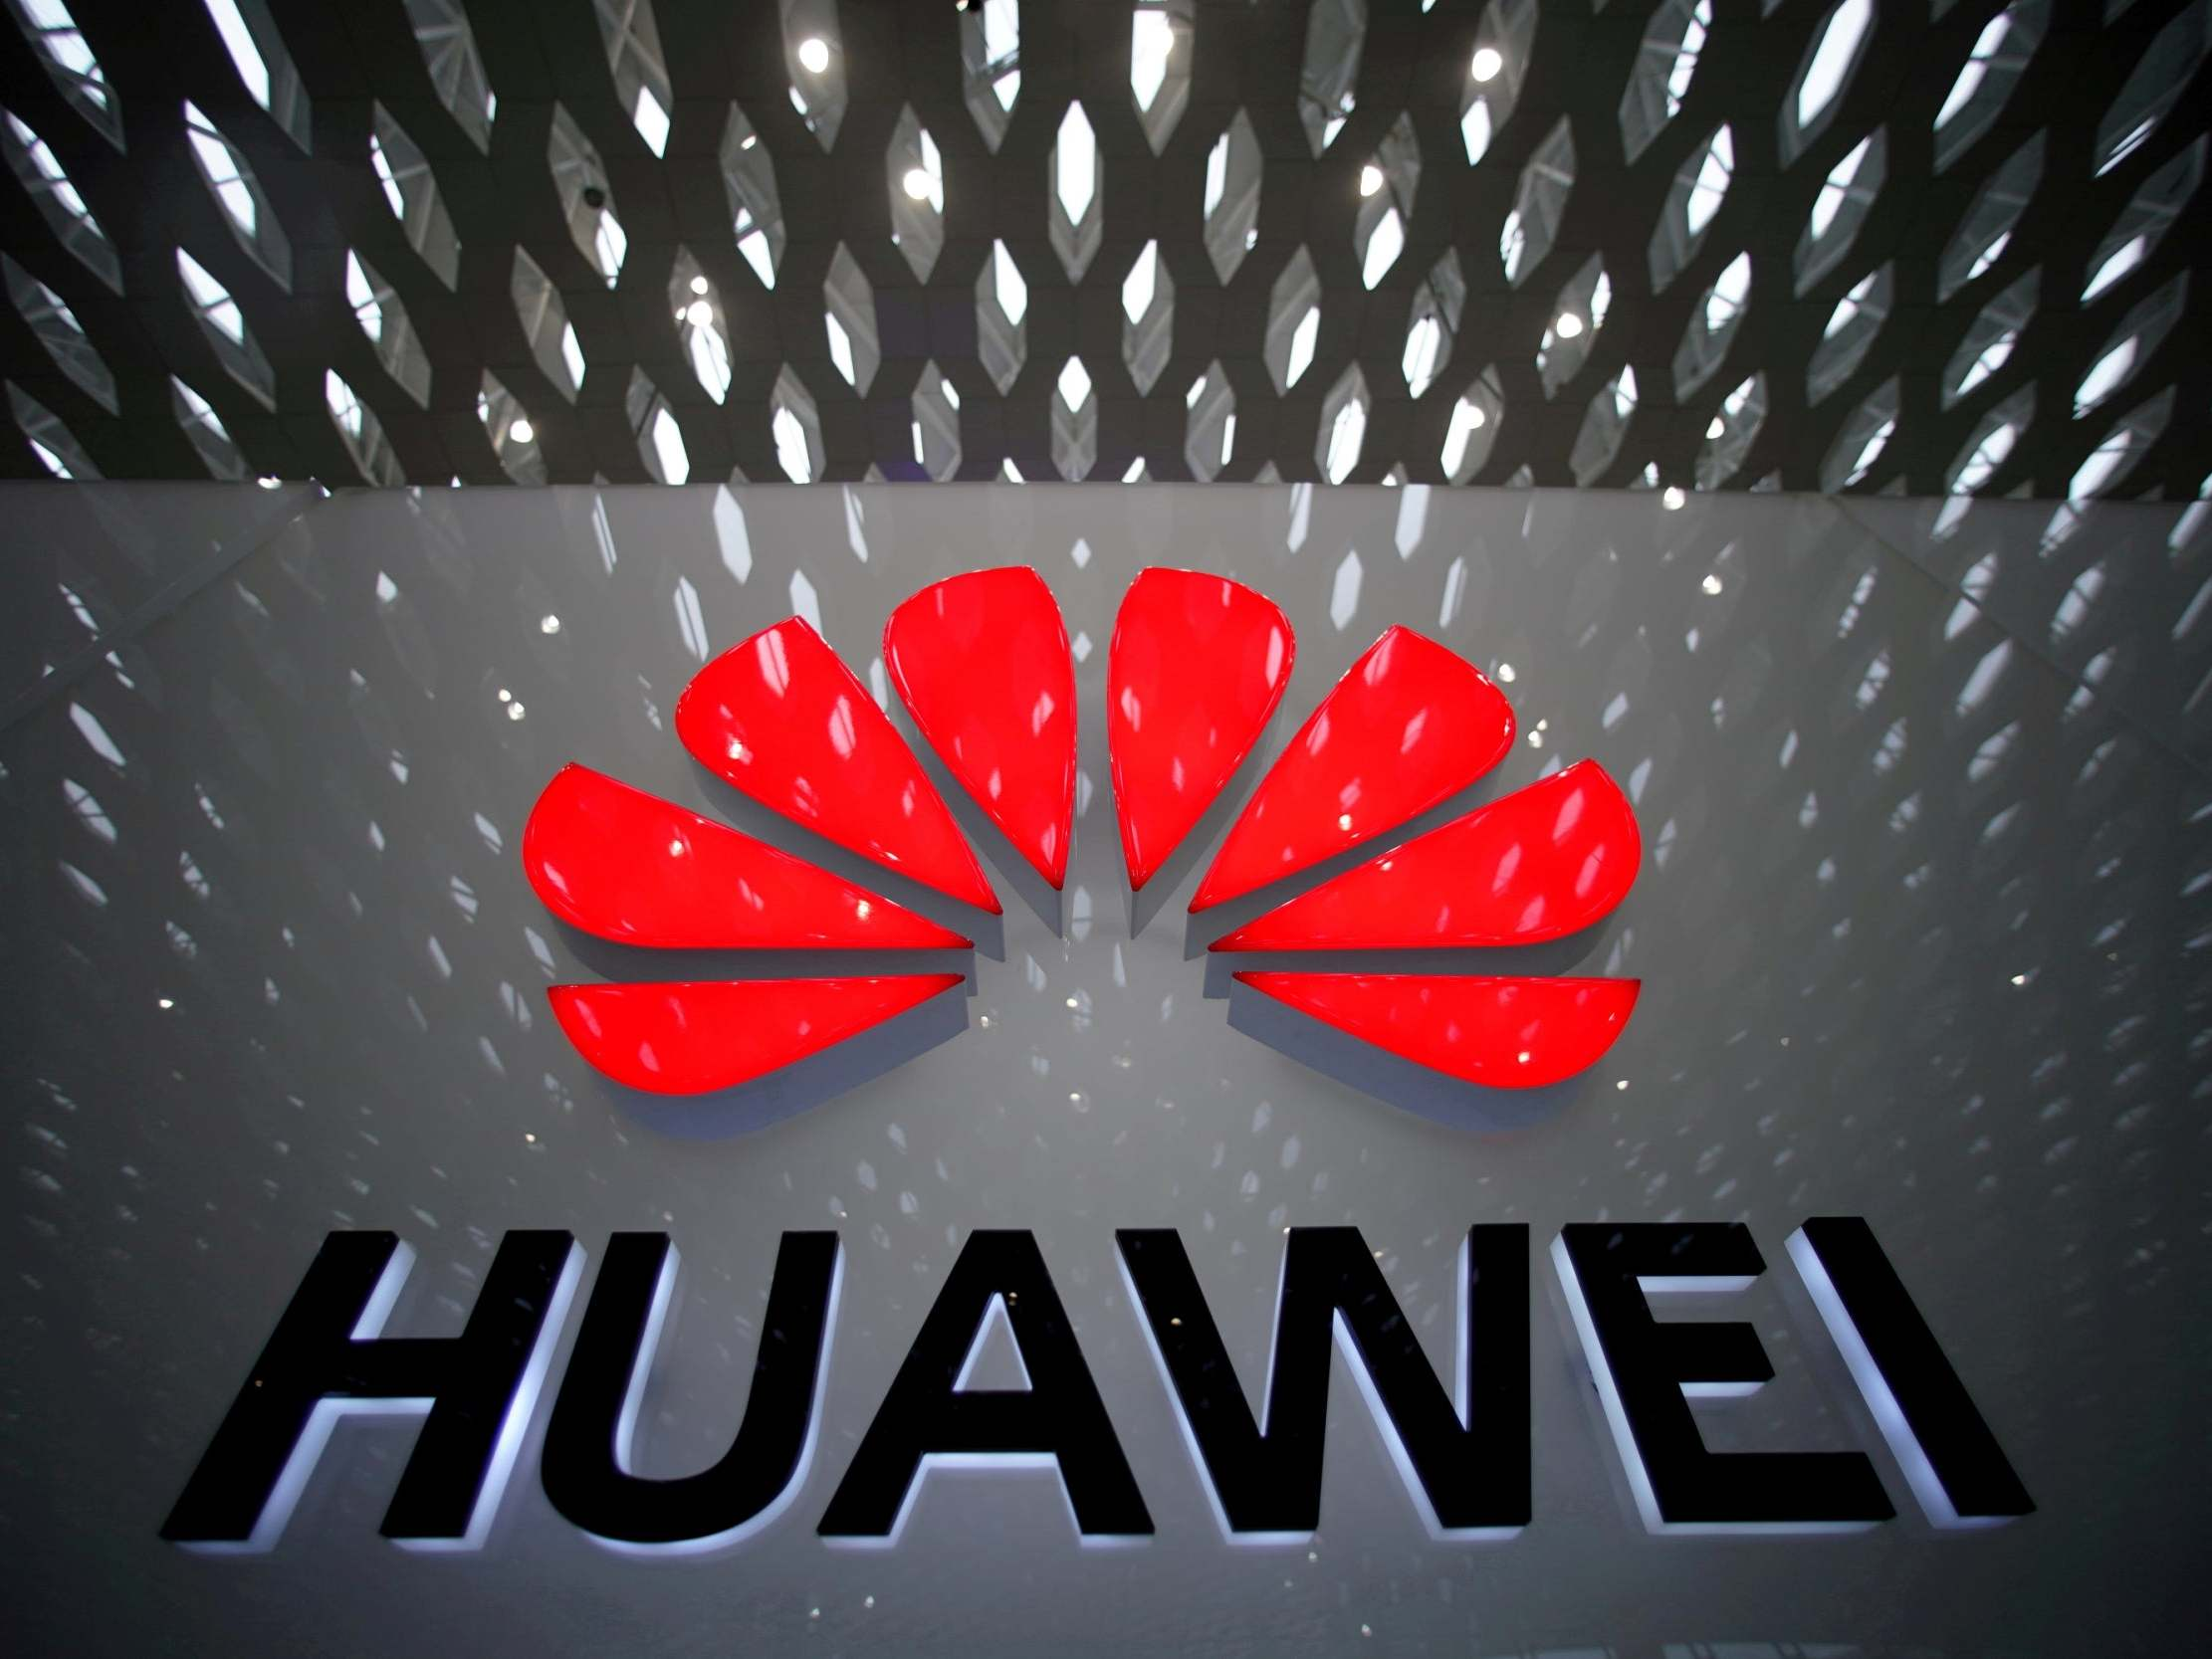 Huawei: Chinese tech giant to be involved UK 5G network, government hints